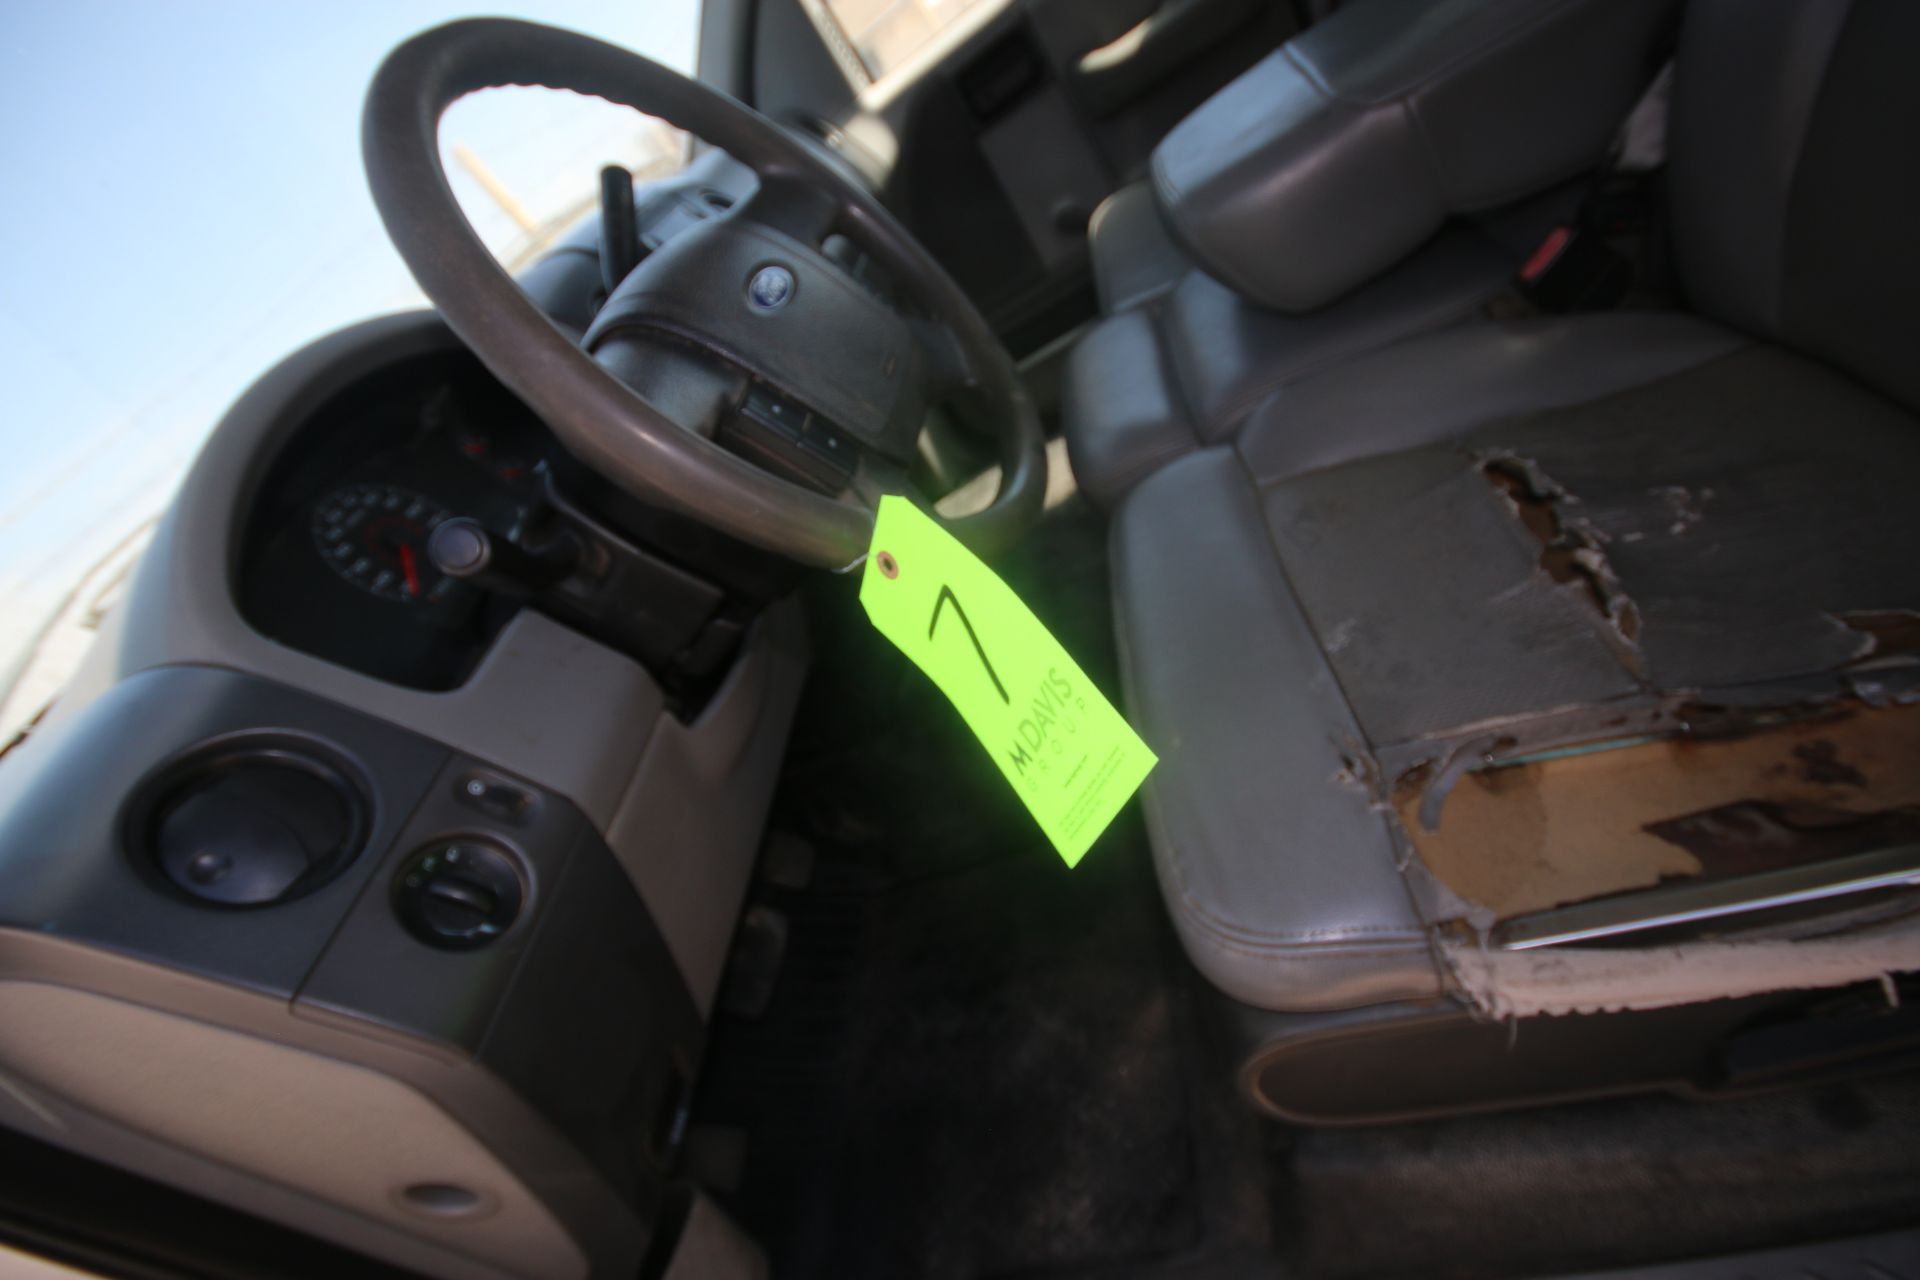 2006 Ford F150 L/B Pick Up Truck, VIN #: 1FTRF12256NA38863, with 167,638 Miles, Started Up as of - Image 7 of 18